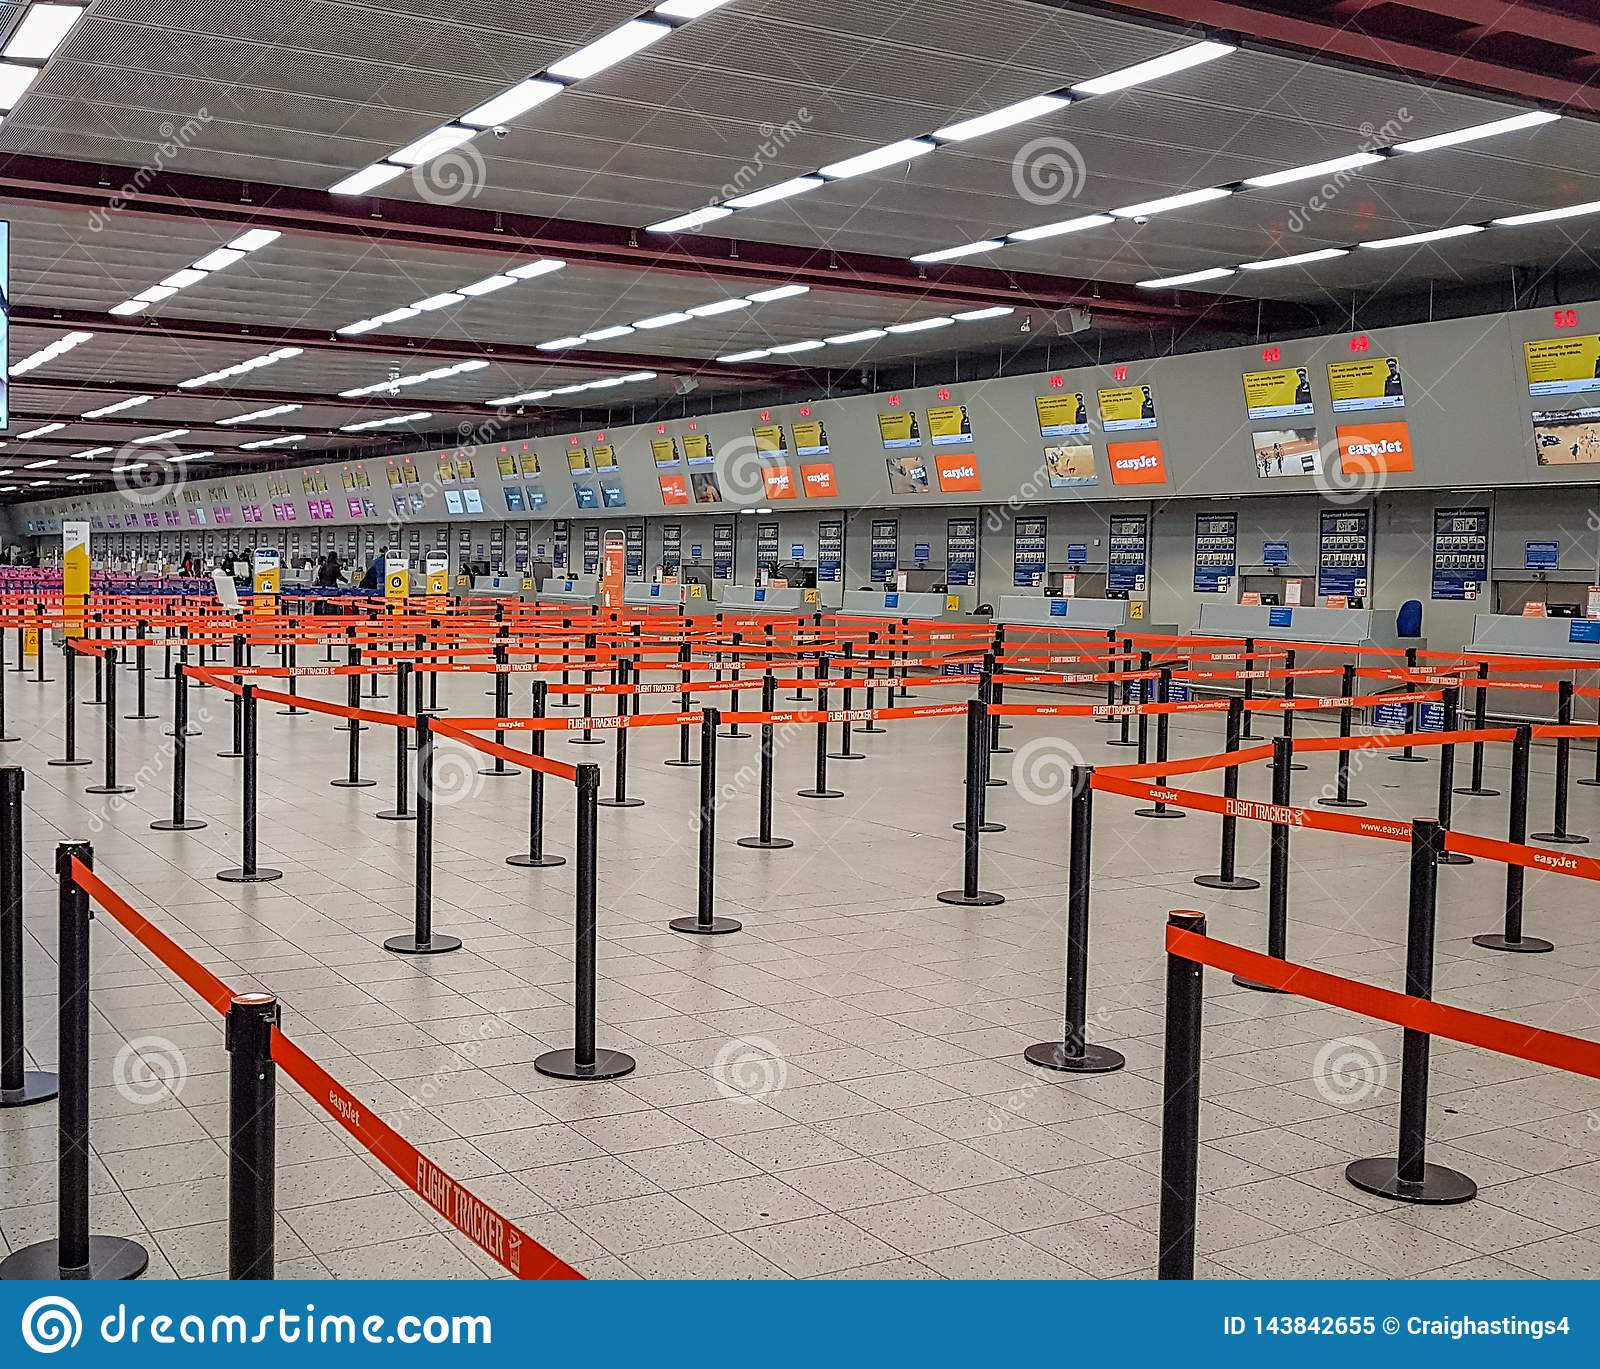 Luton Airport Easyjet Check In Desks  Empty With No Passengers